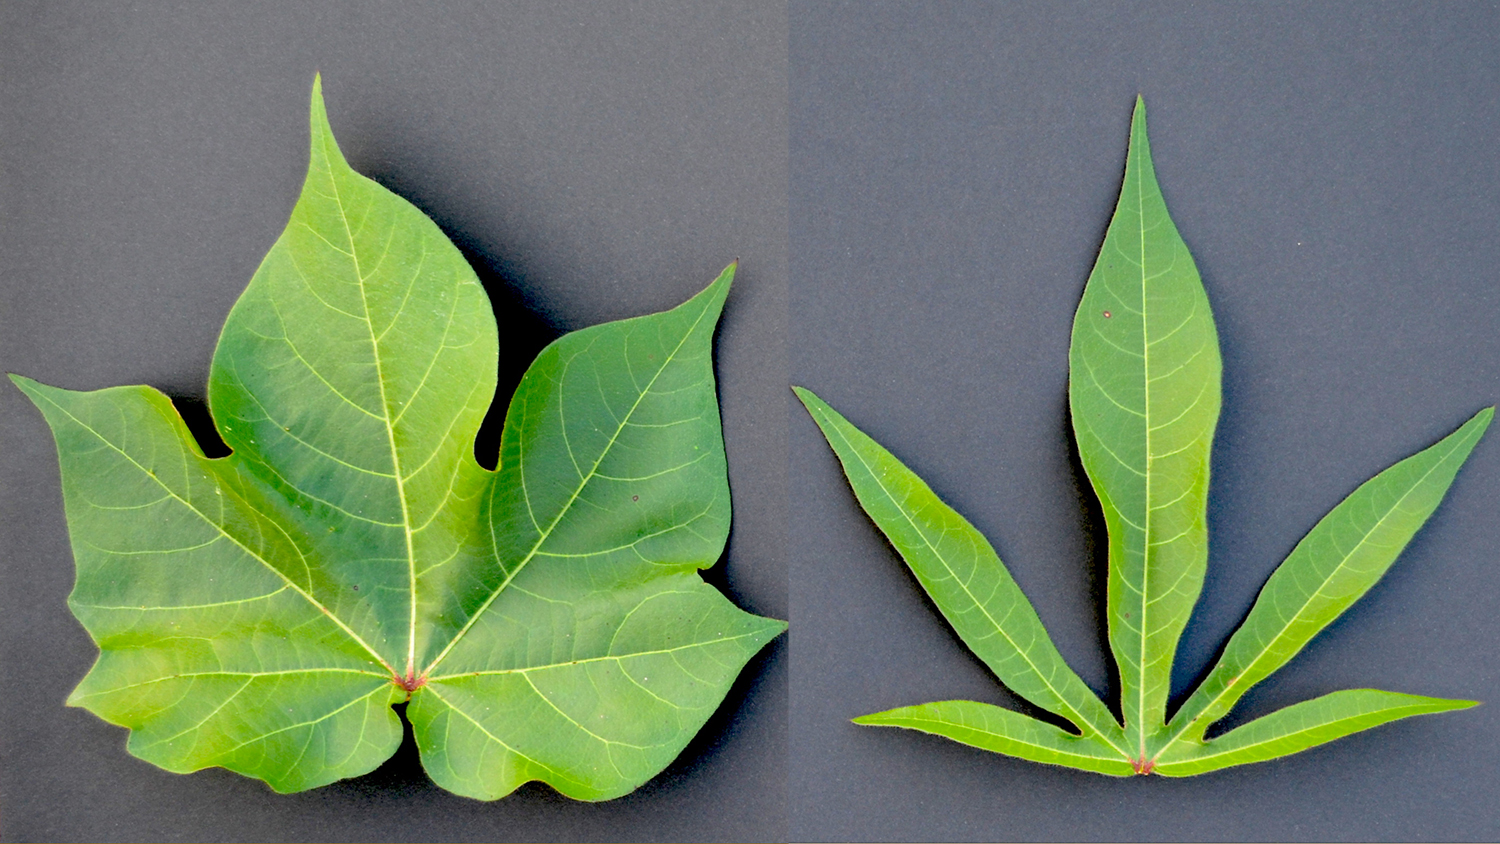 A broad 'normal' cotton leaf compared to an 'okra'-shaped cotton leaf.